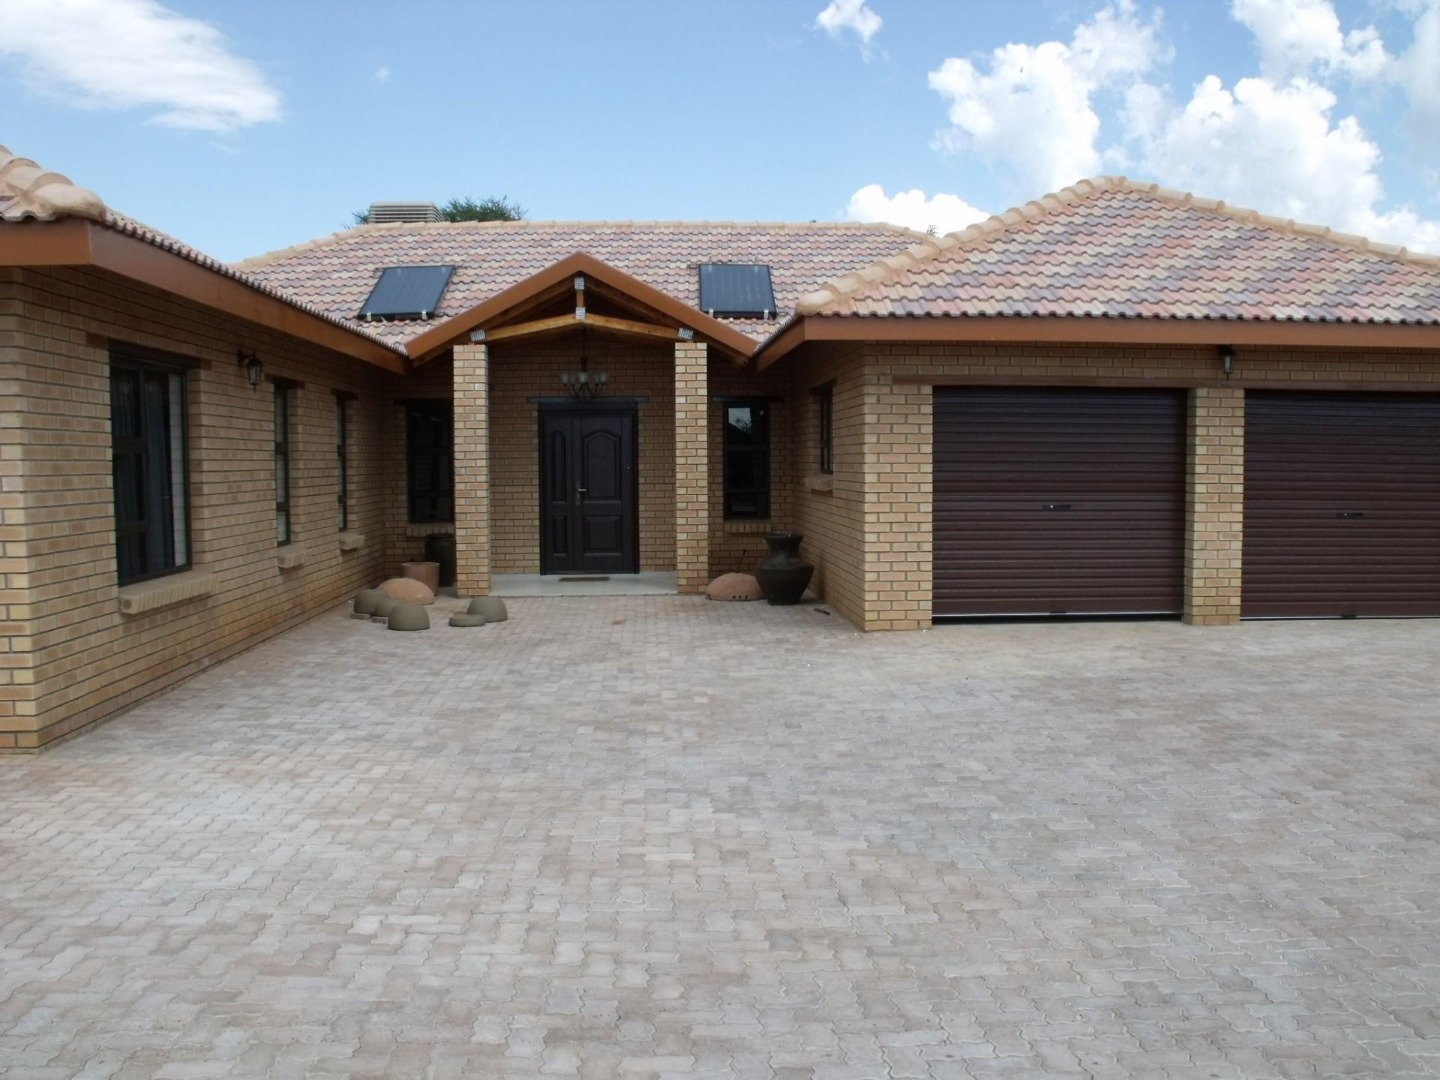 5 Bedroom House For Sale in Lephalale